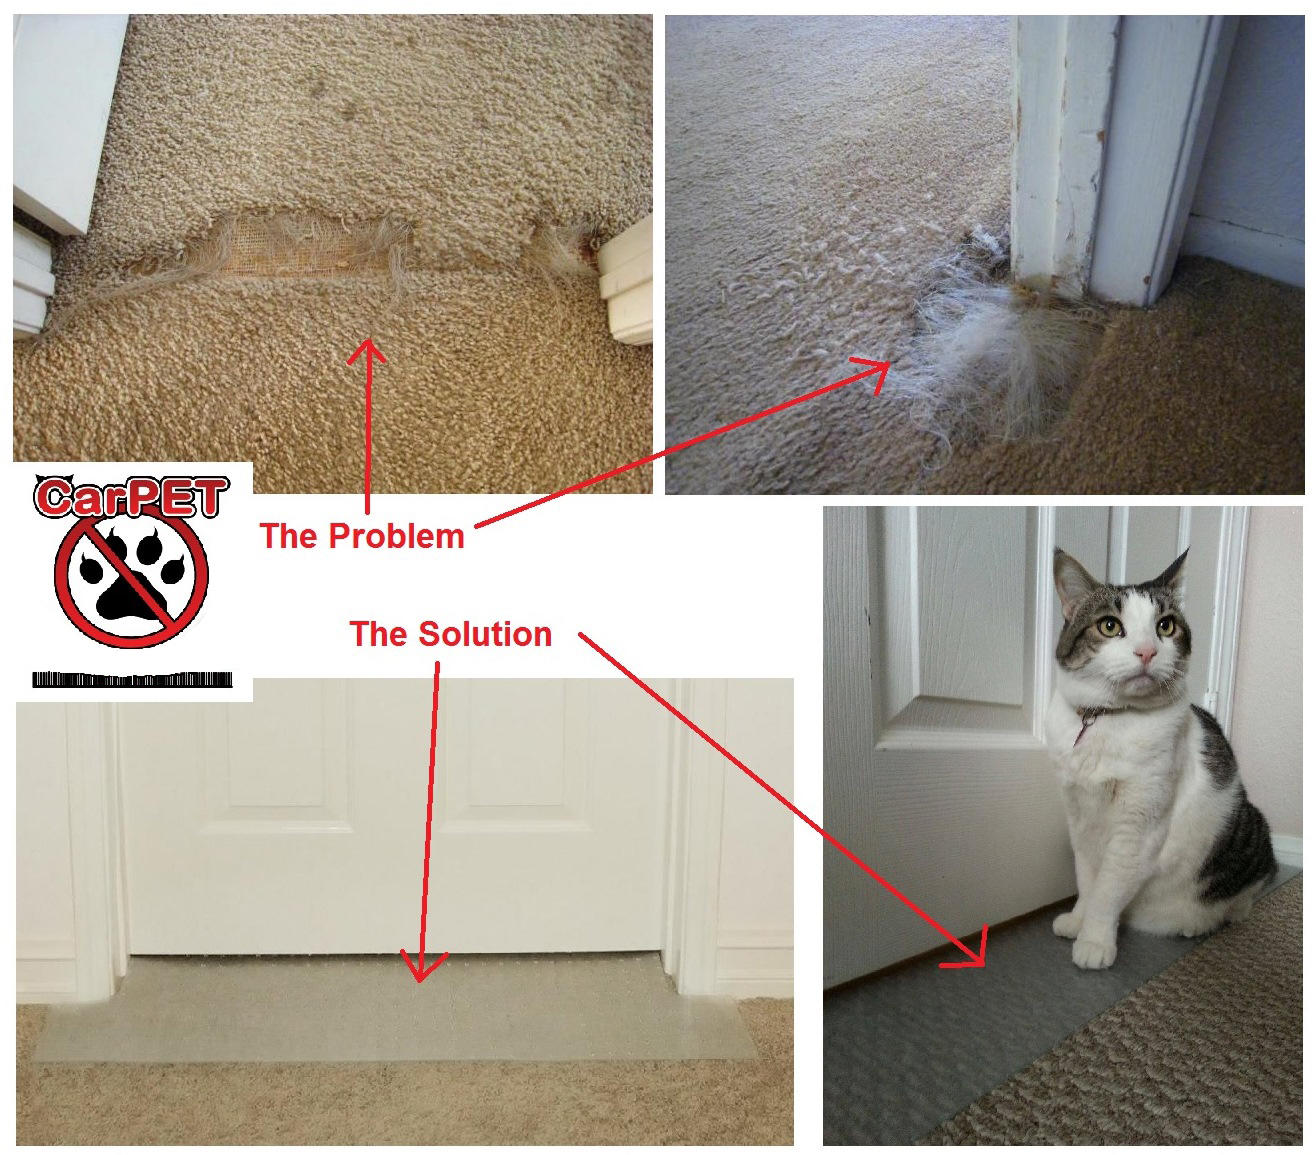 Furniture Guard Self Adhesive Cat Scratch Protector-3